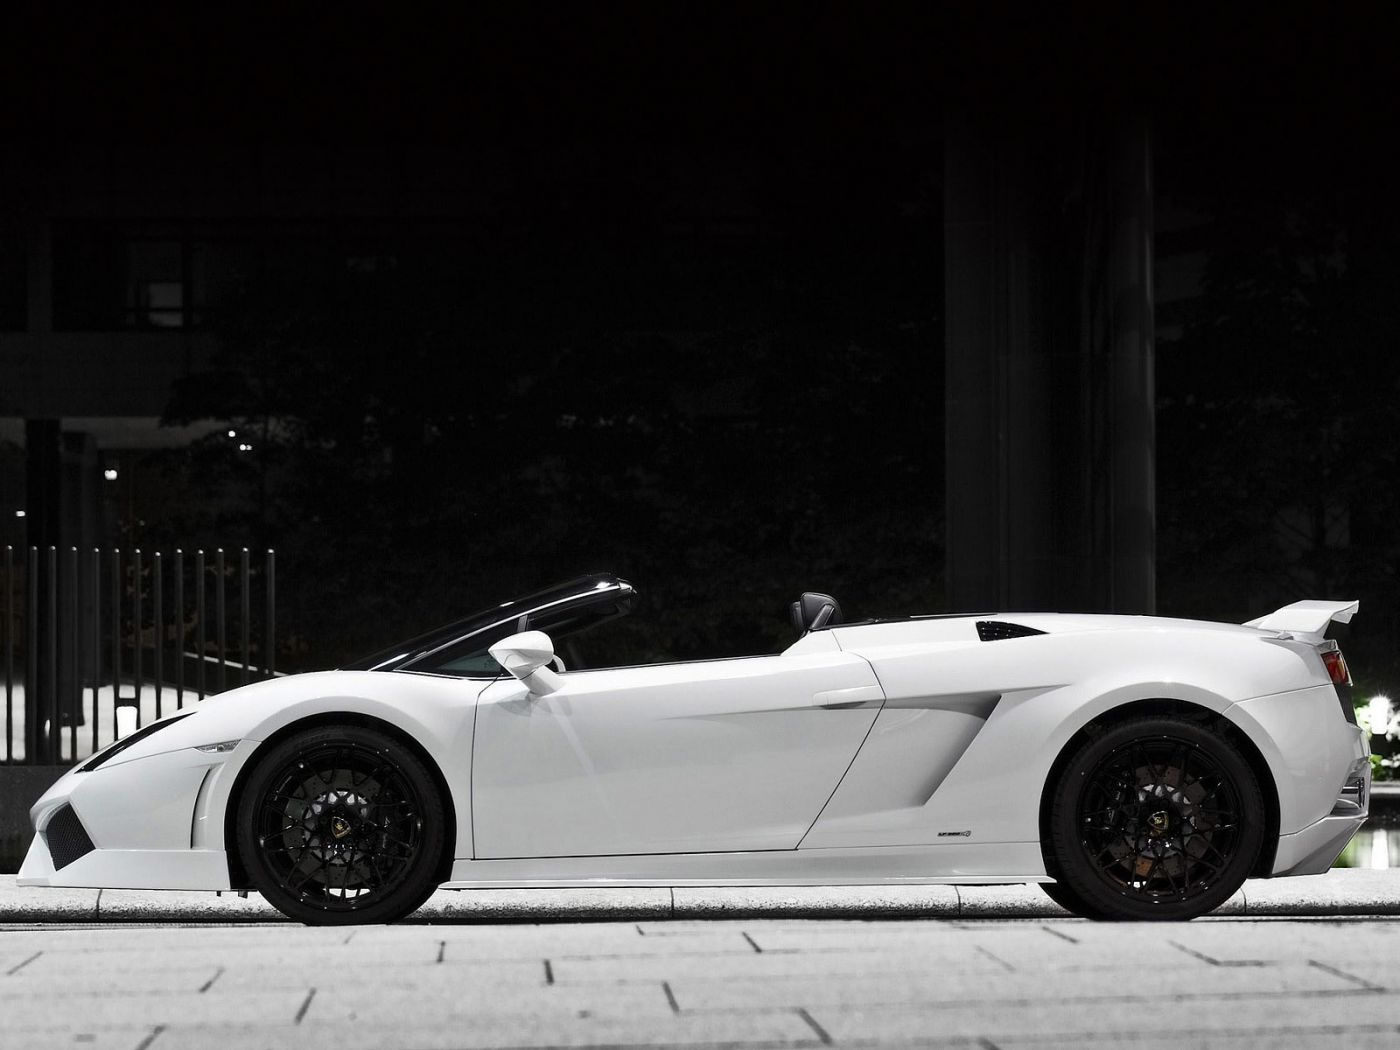 Gallardo Gt600 White Side View Wallpaper 1400x1050